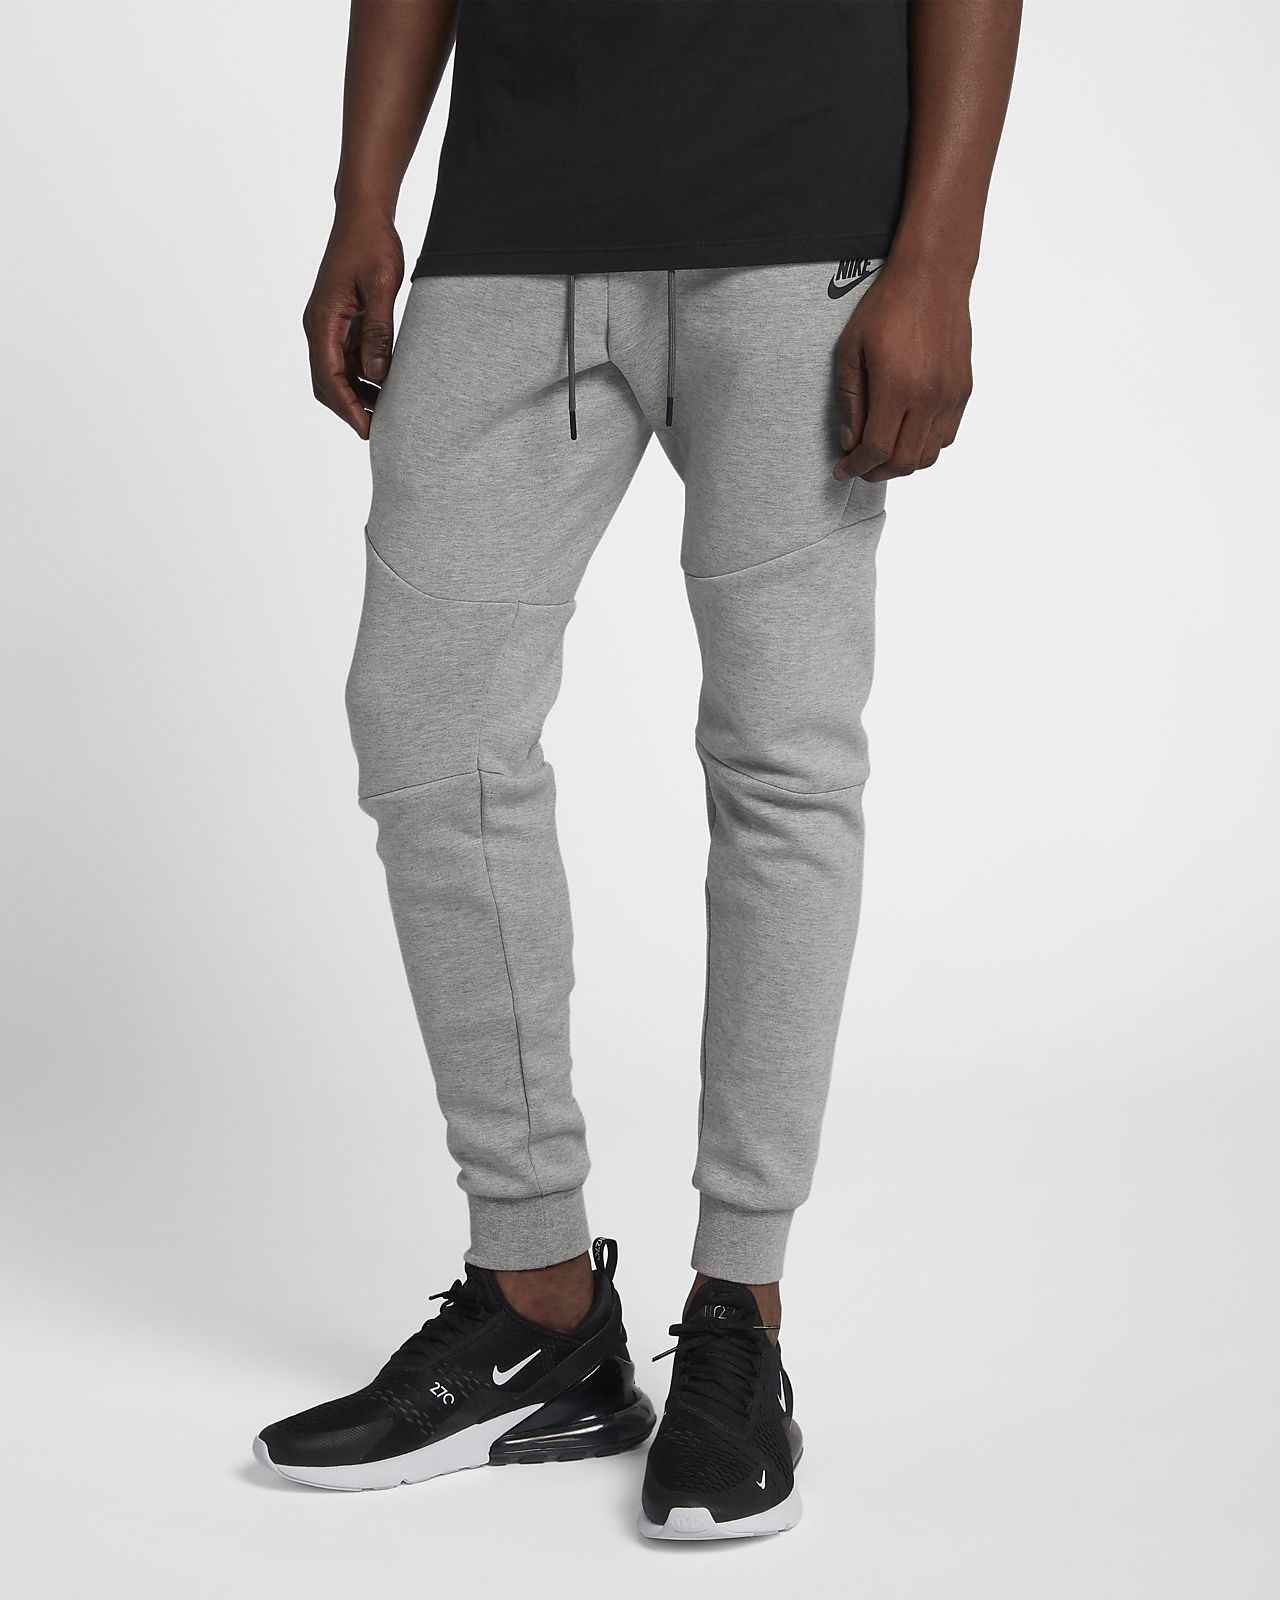 2f7878f299cb Nike Sportswear Tech Fleece Men s Joggers. Nike.com